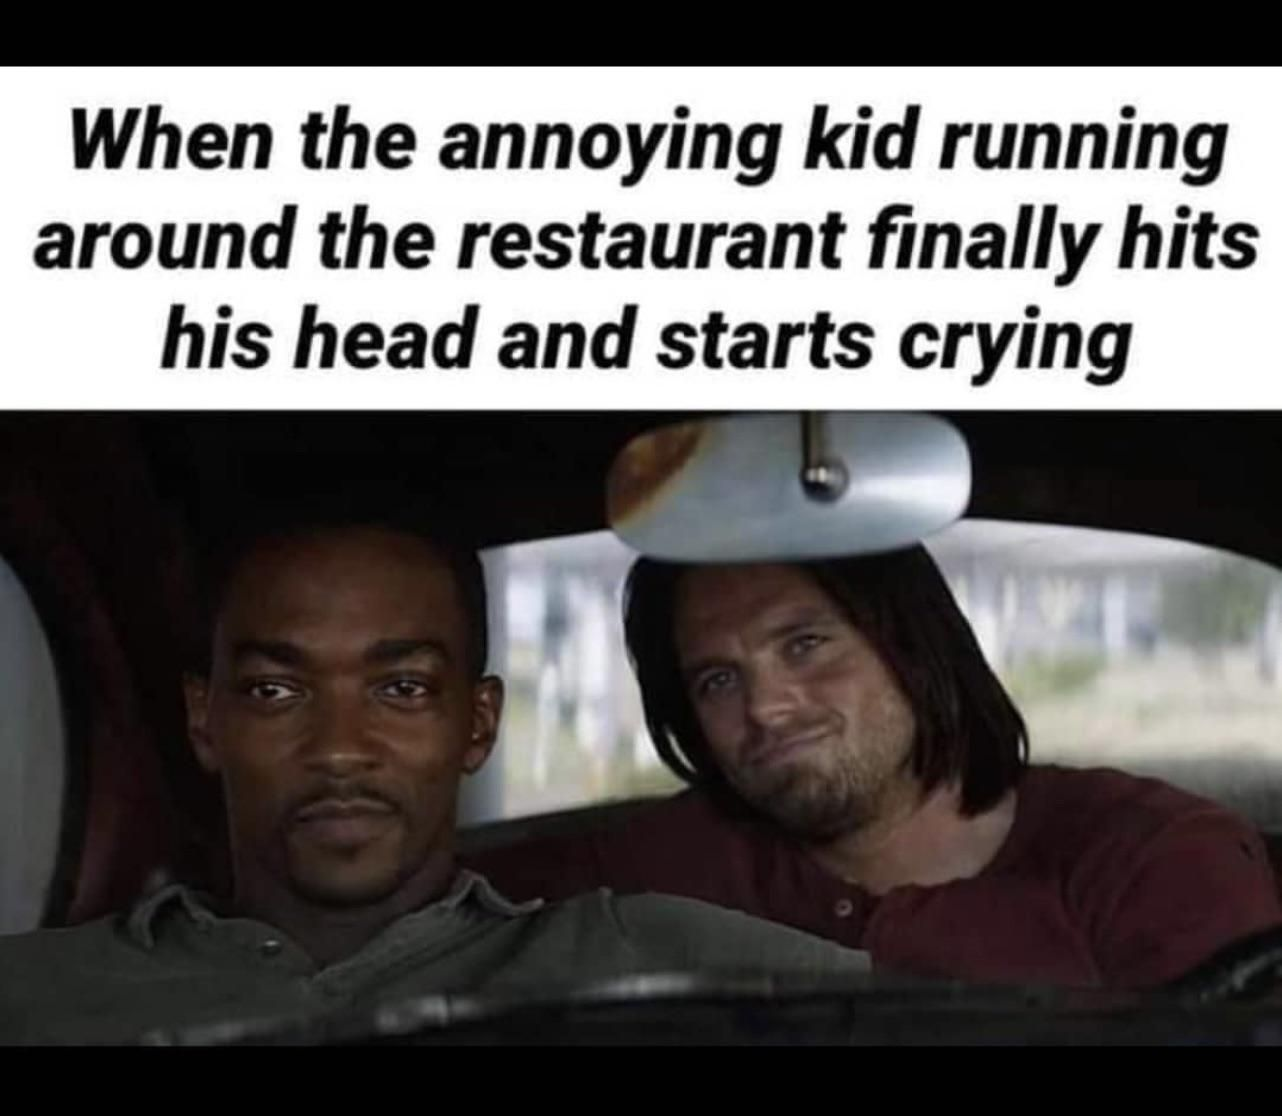 There's always that one kid at the restaurant